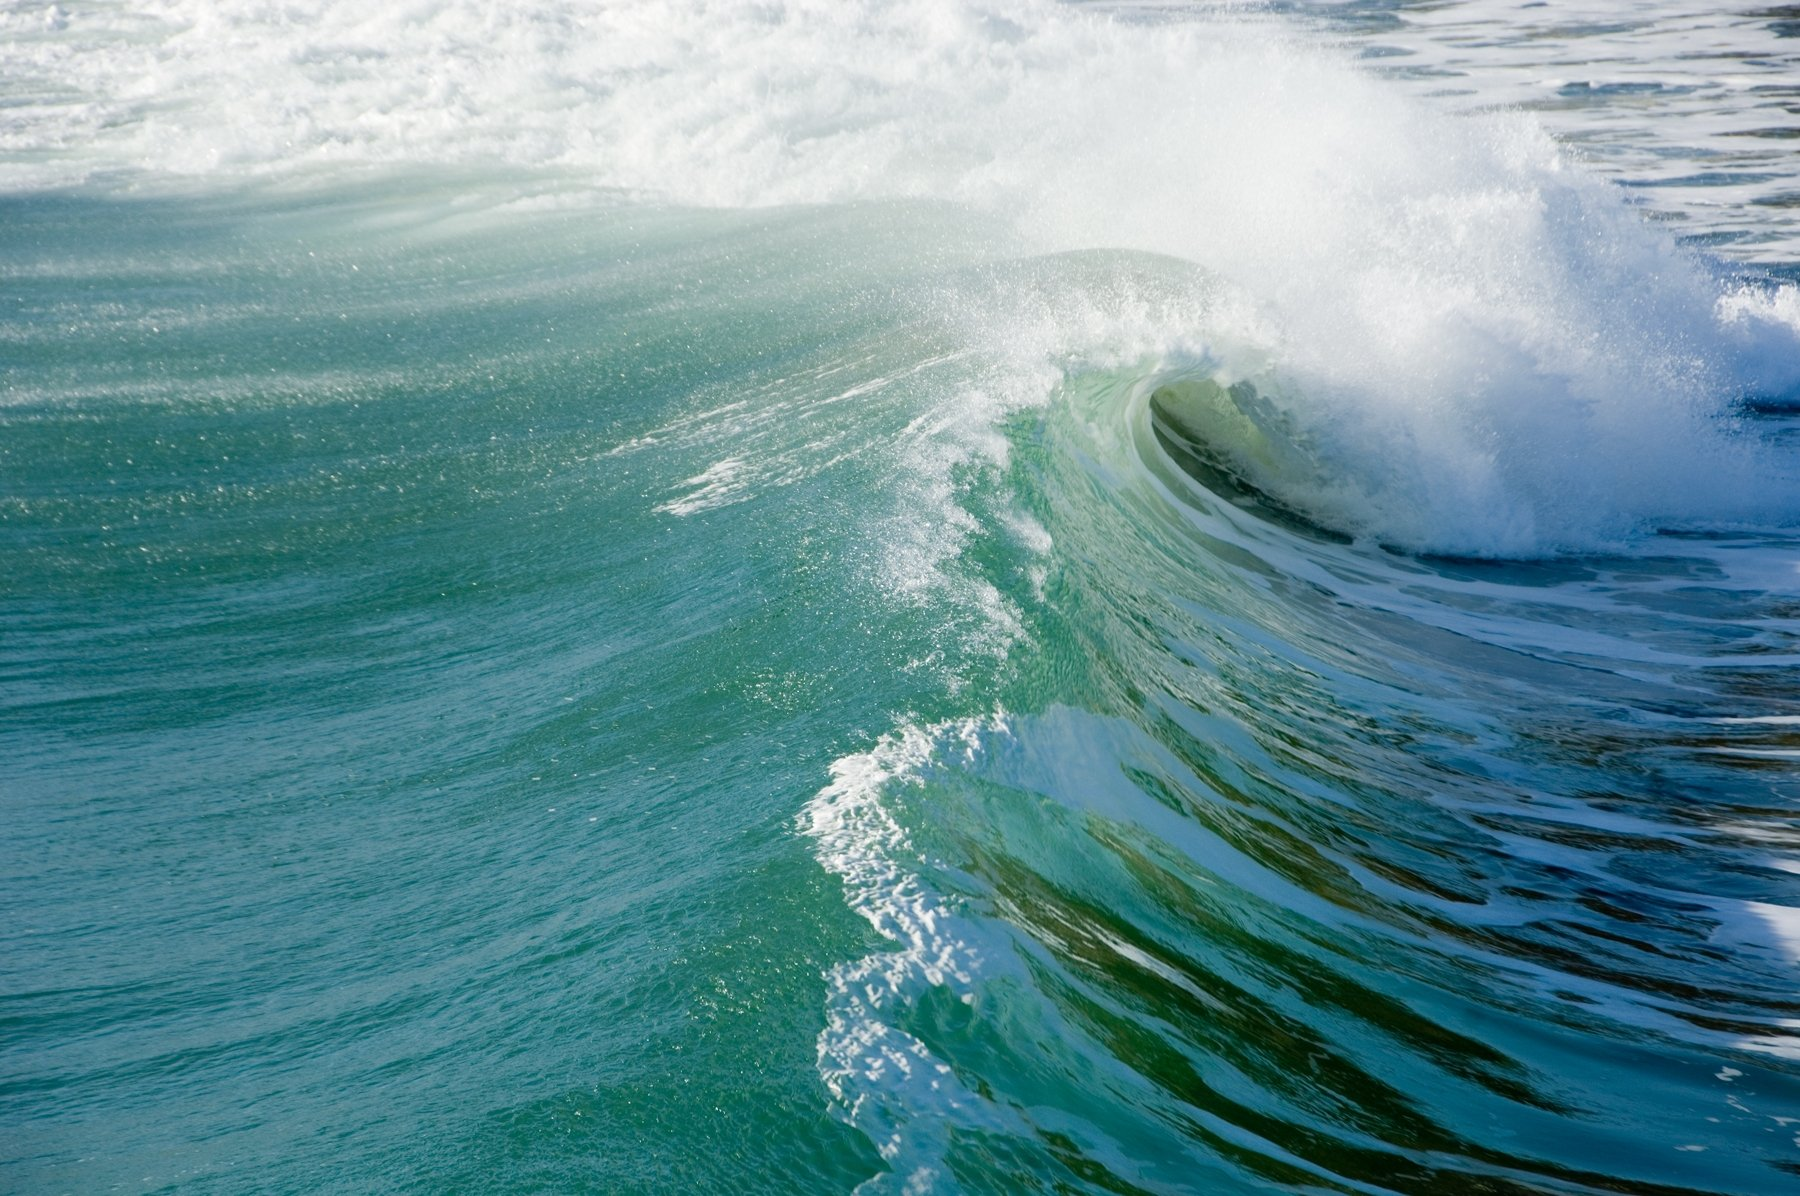 Wave Tube BIG Art Photograph Surfing by